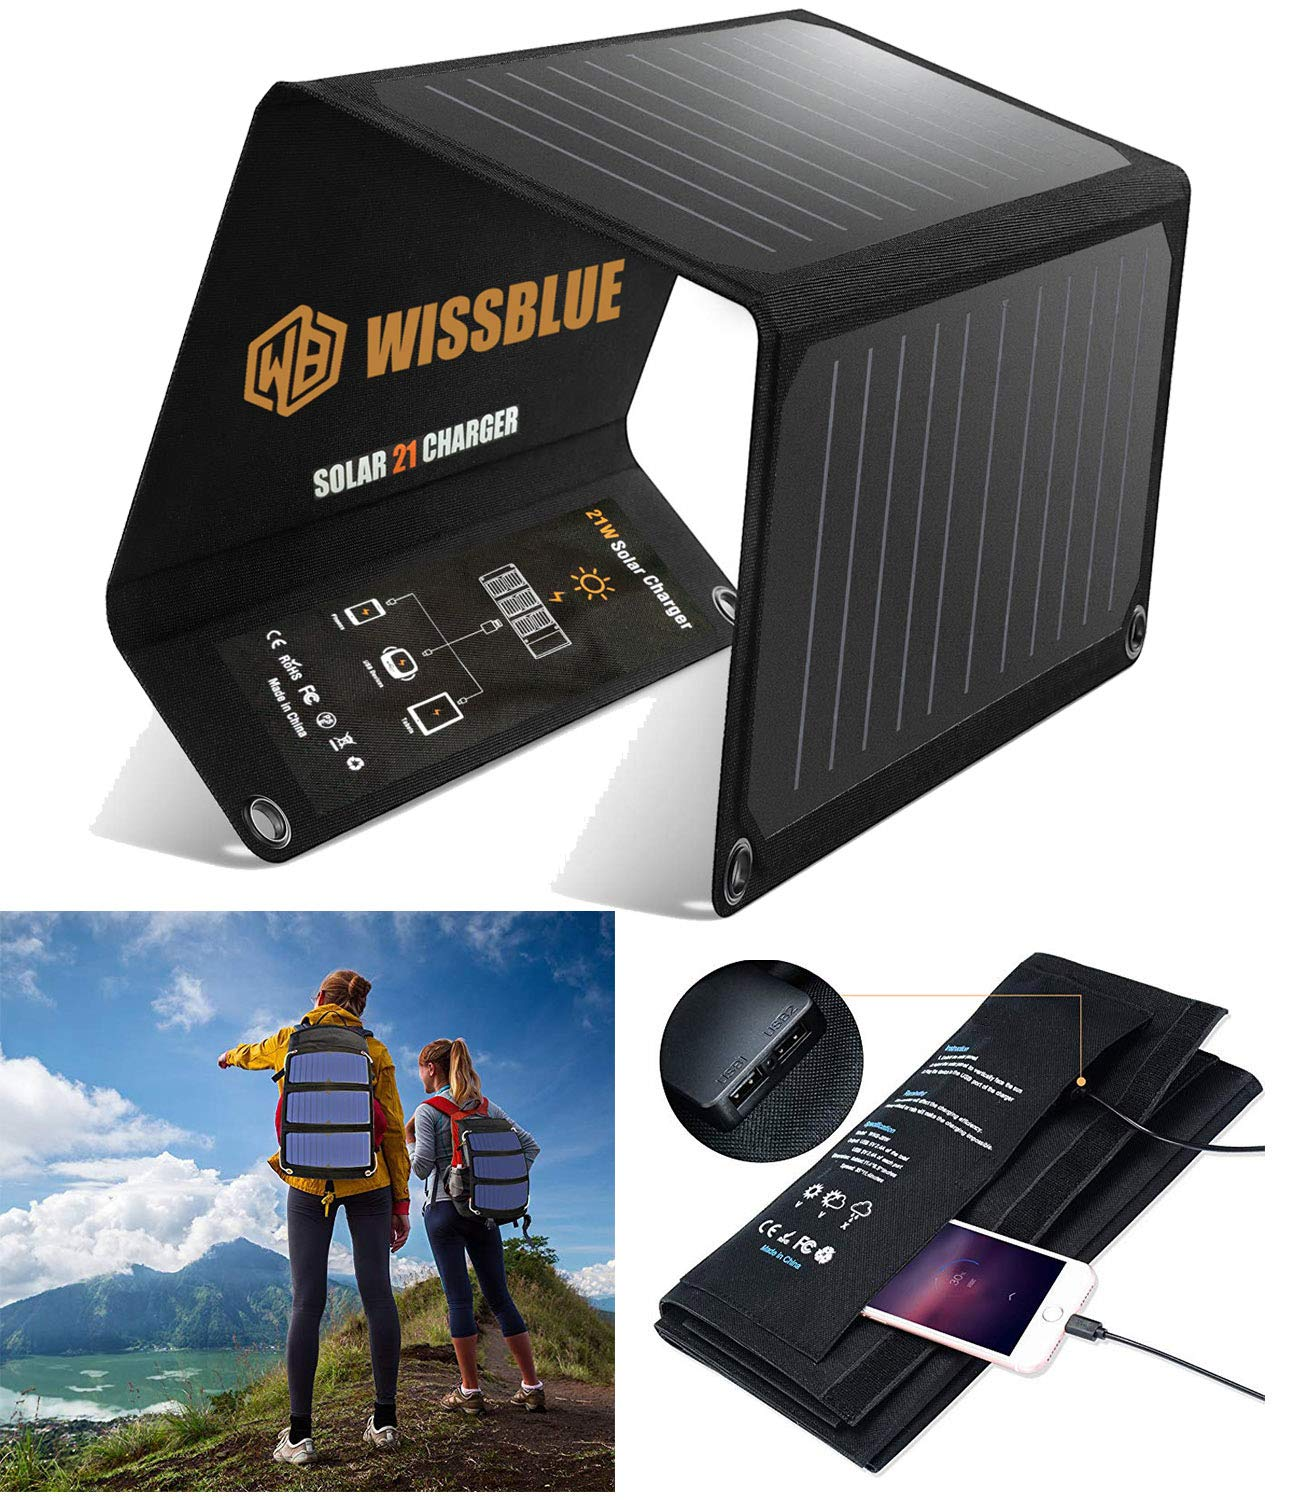 WISSBLUE Solar Panel Charger 21W/60W, Dual USB 4.2A Fast Solar Charger, Portable Camping Travel Charger,Hiking,Hurricane, Emergency Backup. for All 5V Devices, iPhone iPad Samsung Kindle etc.